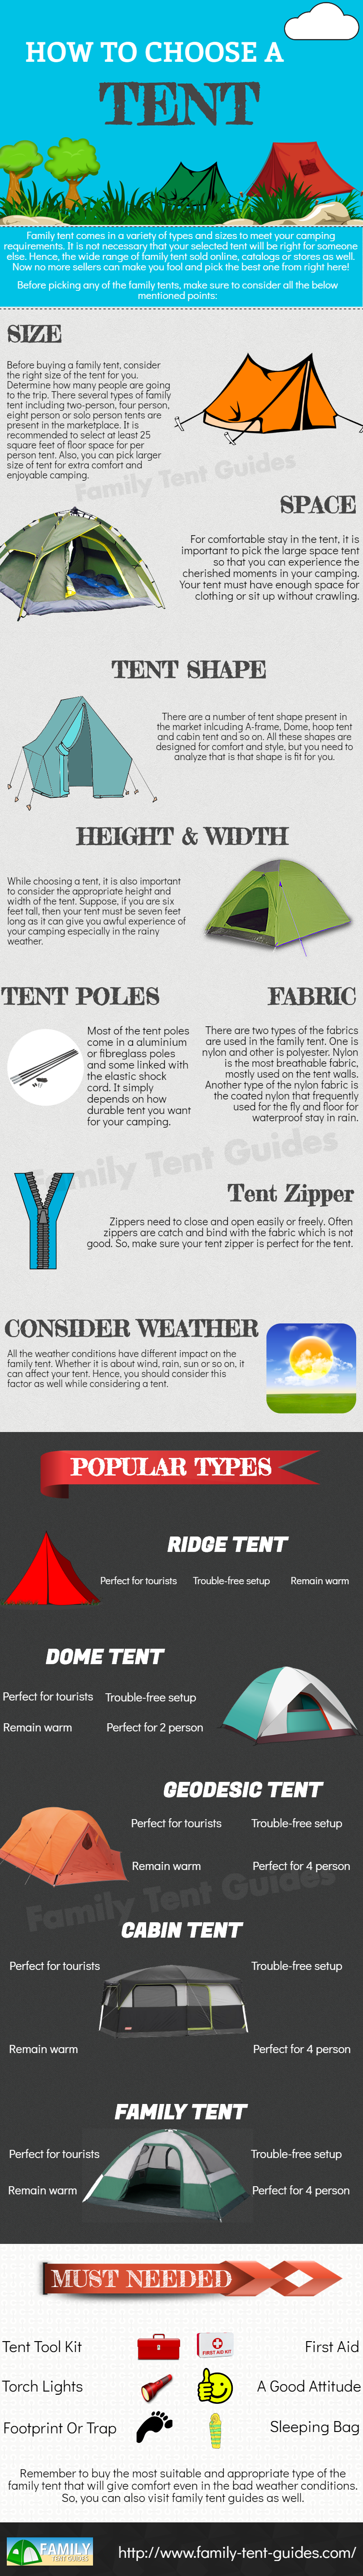 family-tent-infographic